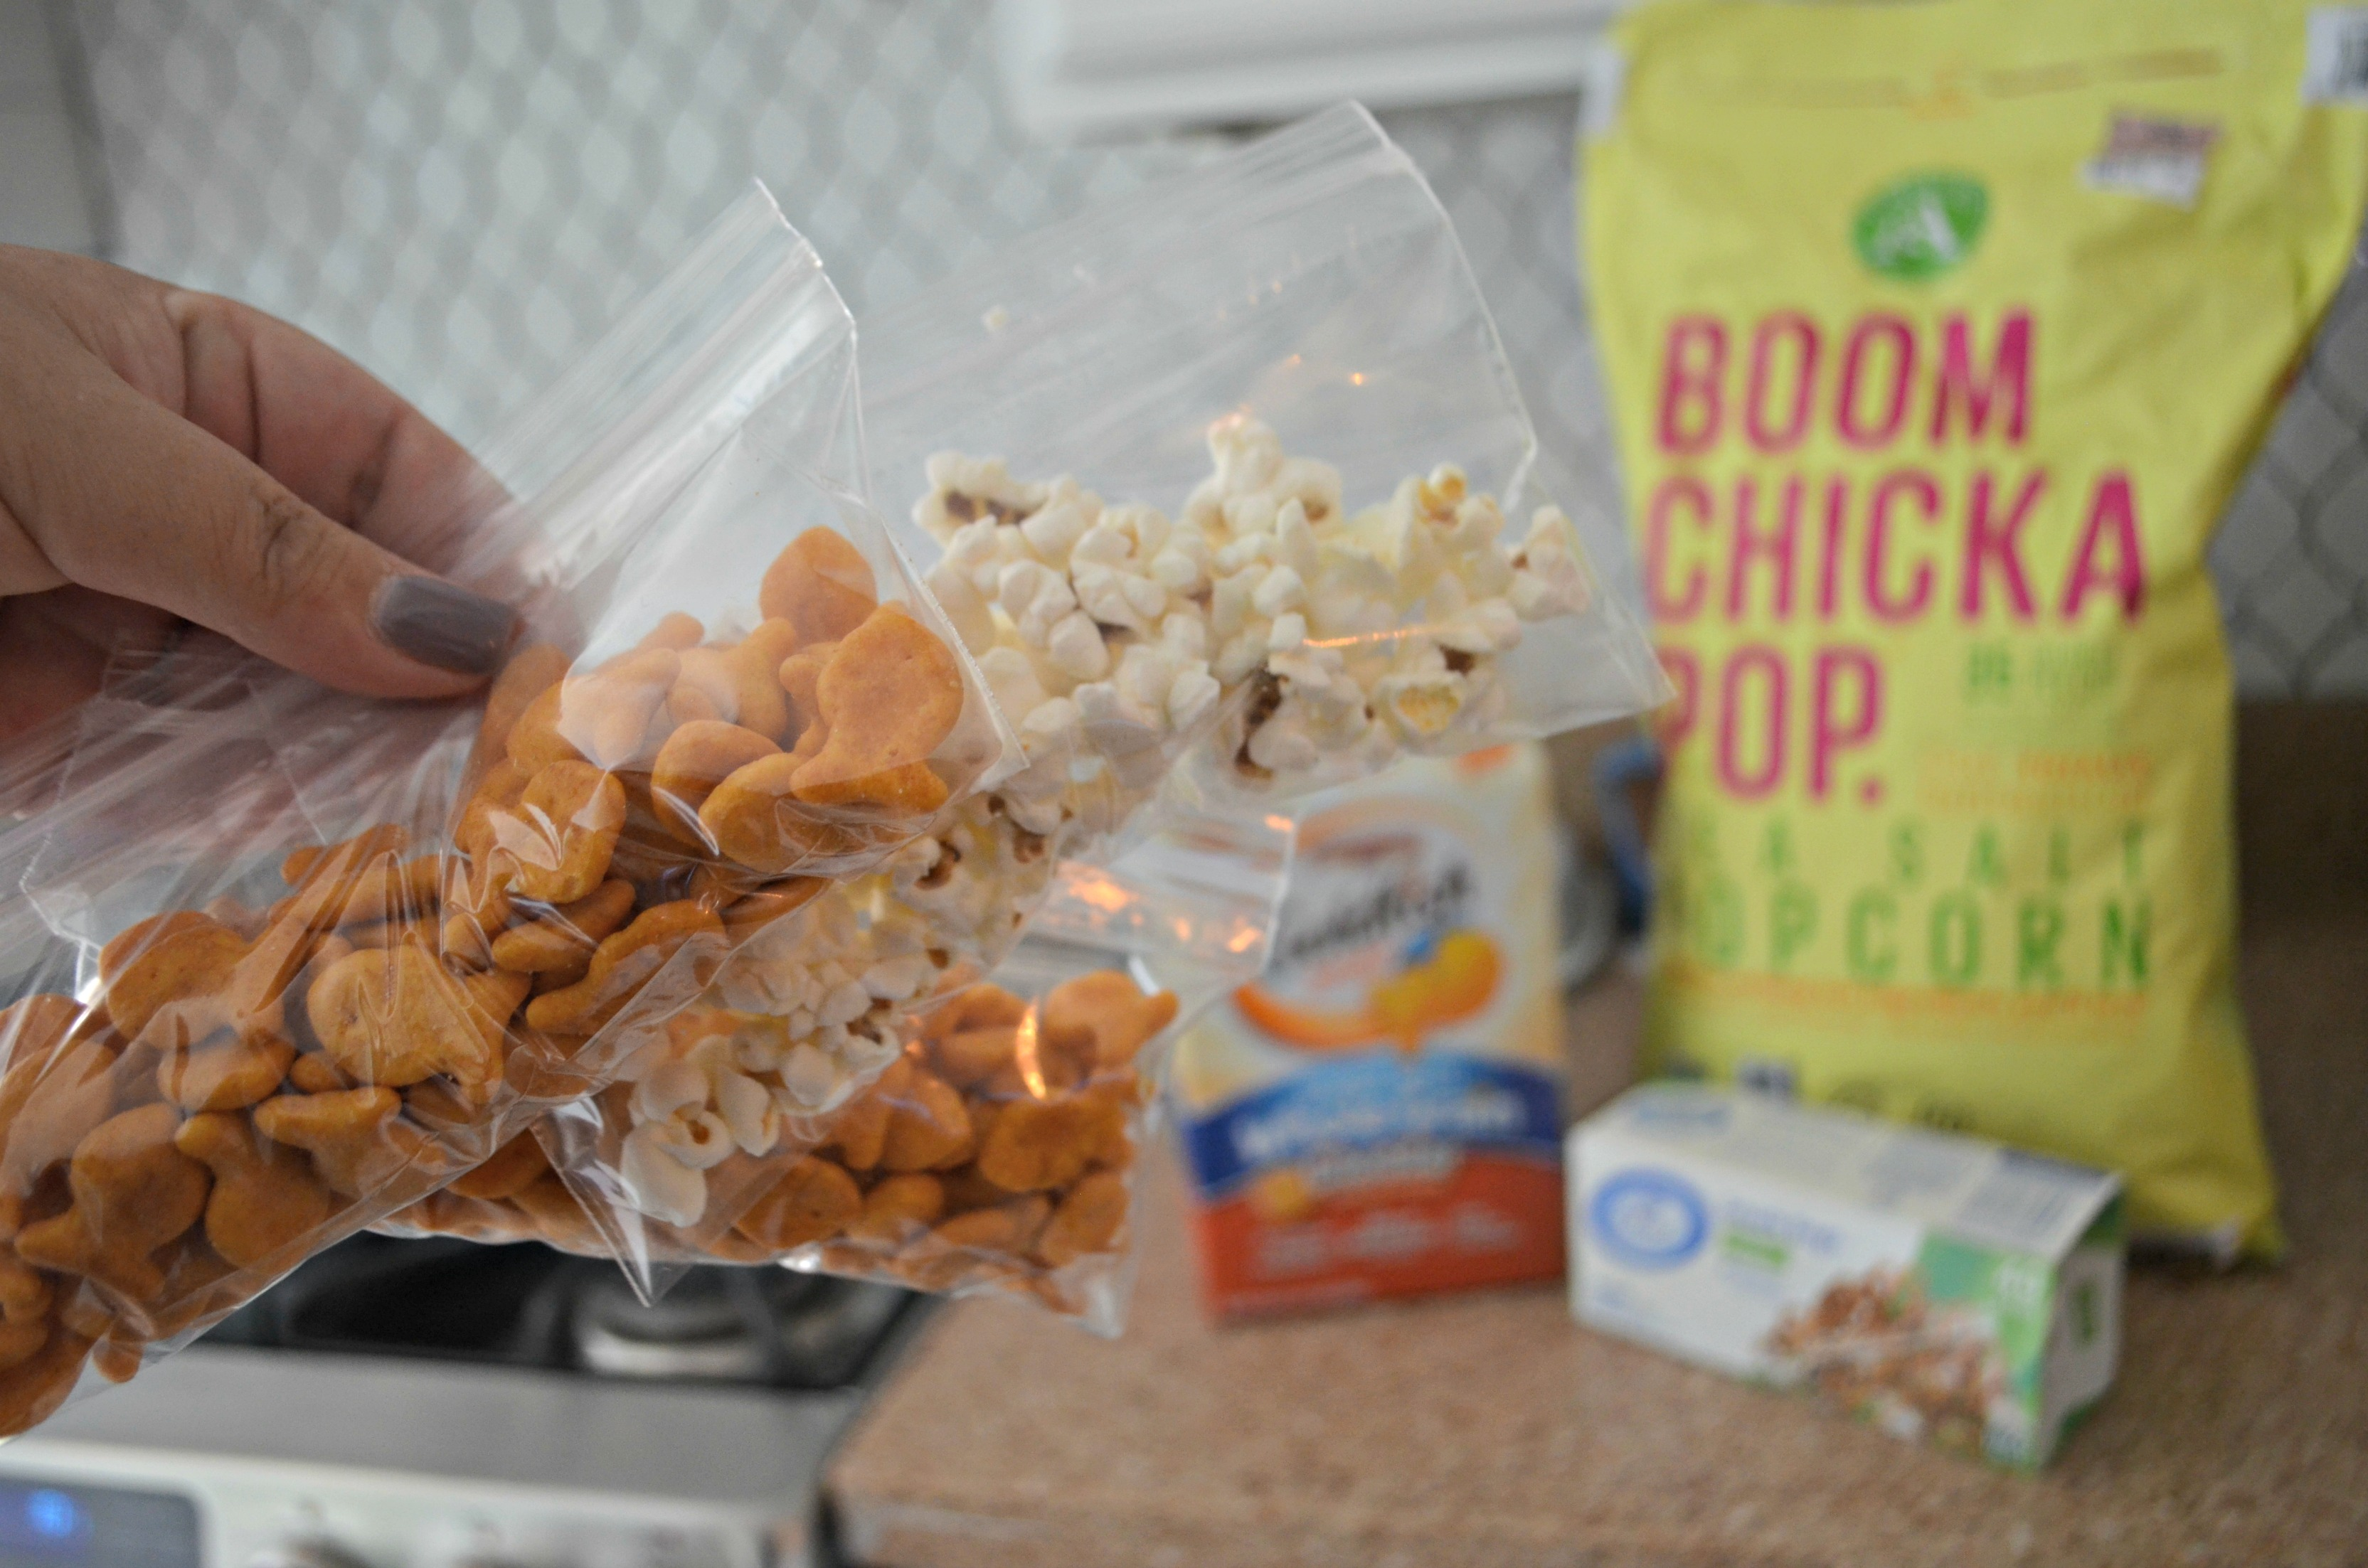 These school clever lunch box hacks are so easy – pre-package snacks into small baggies